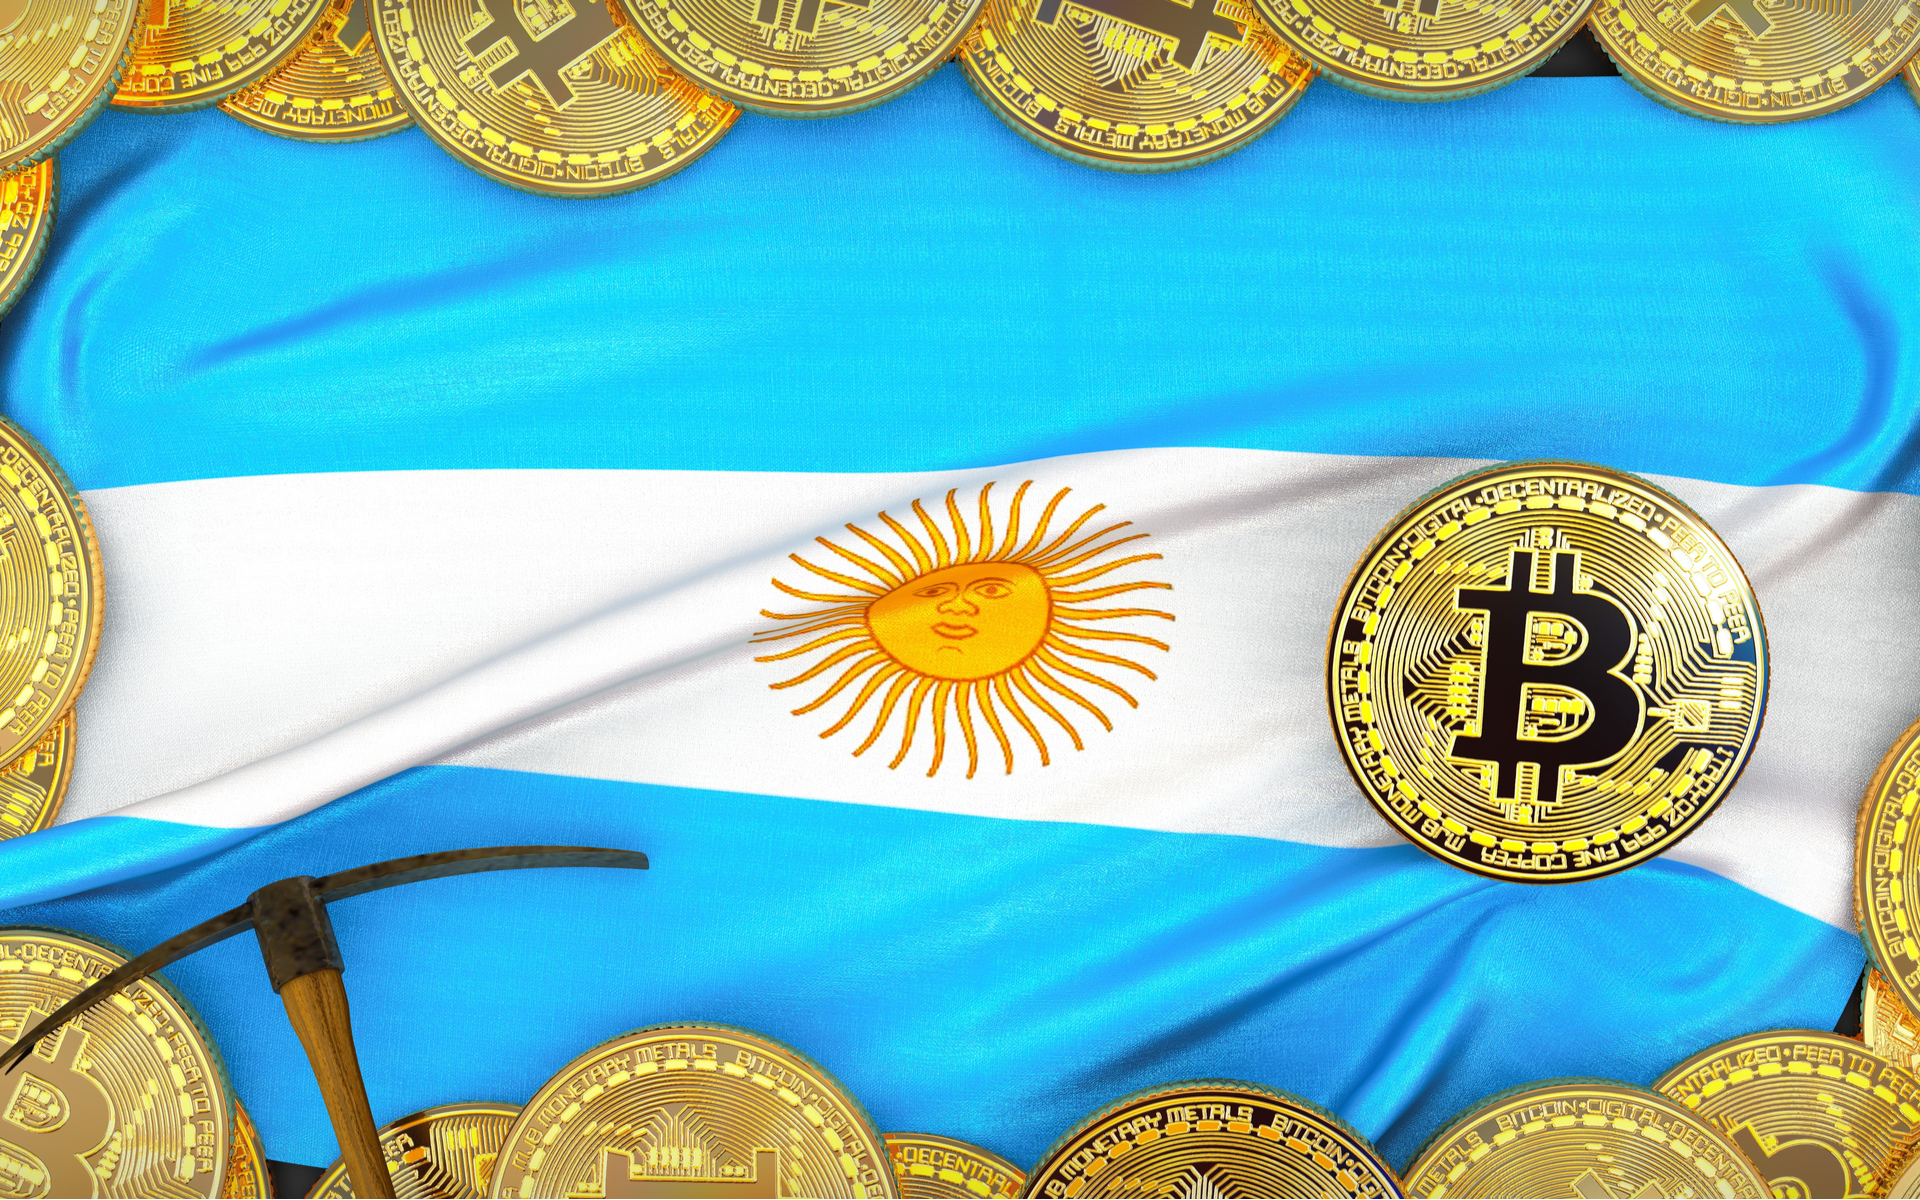 Argentina bitcoin activity rising